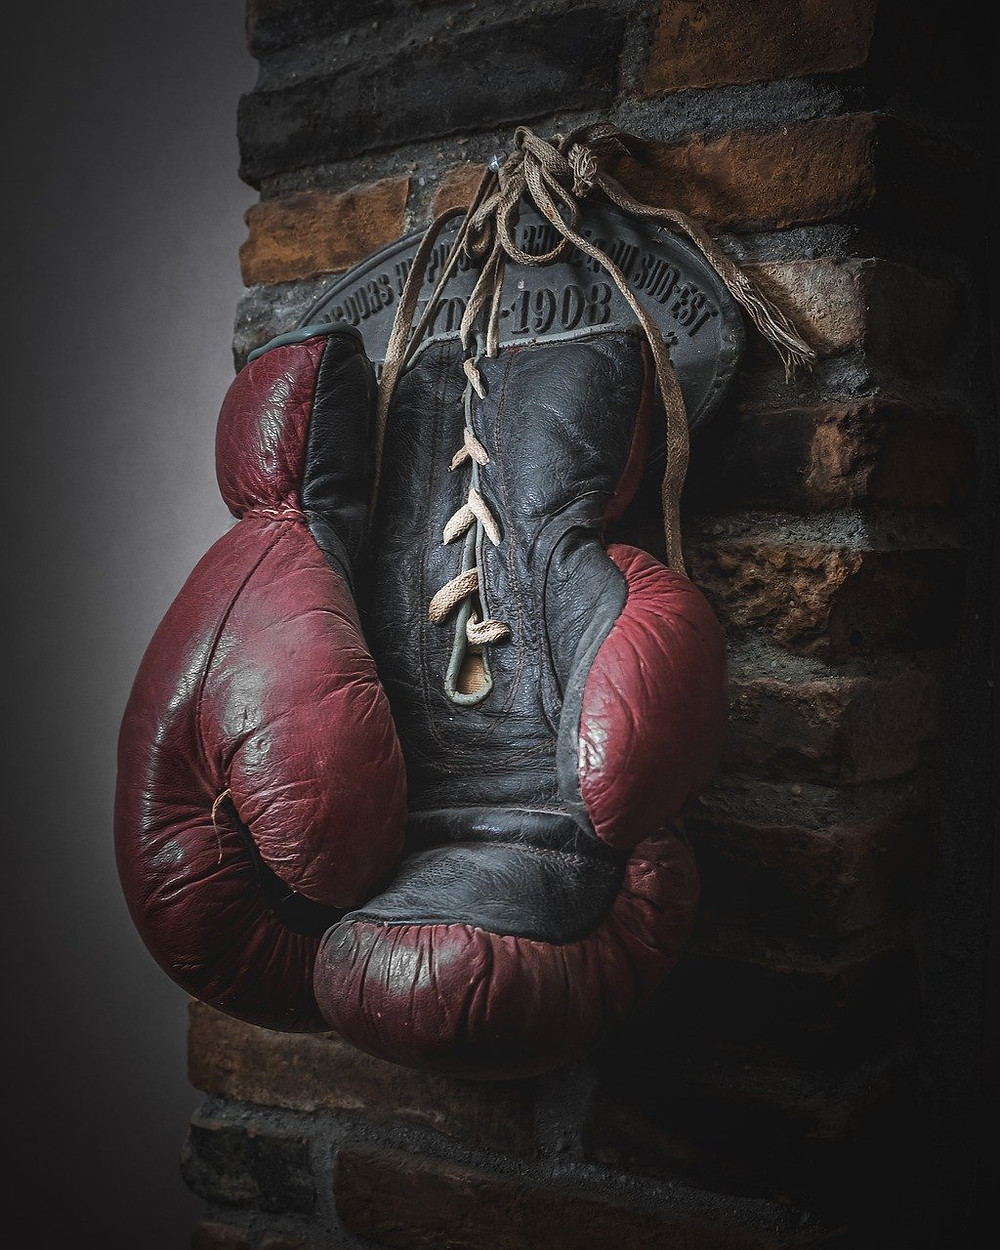 An old pair of 14oz boxing gloves hanging on wall.